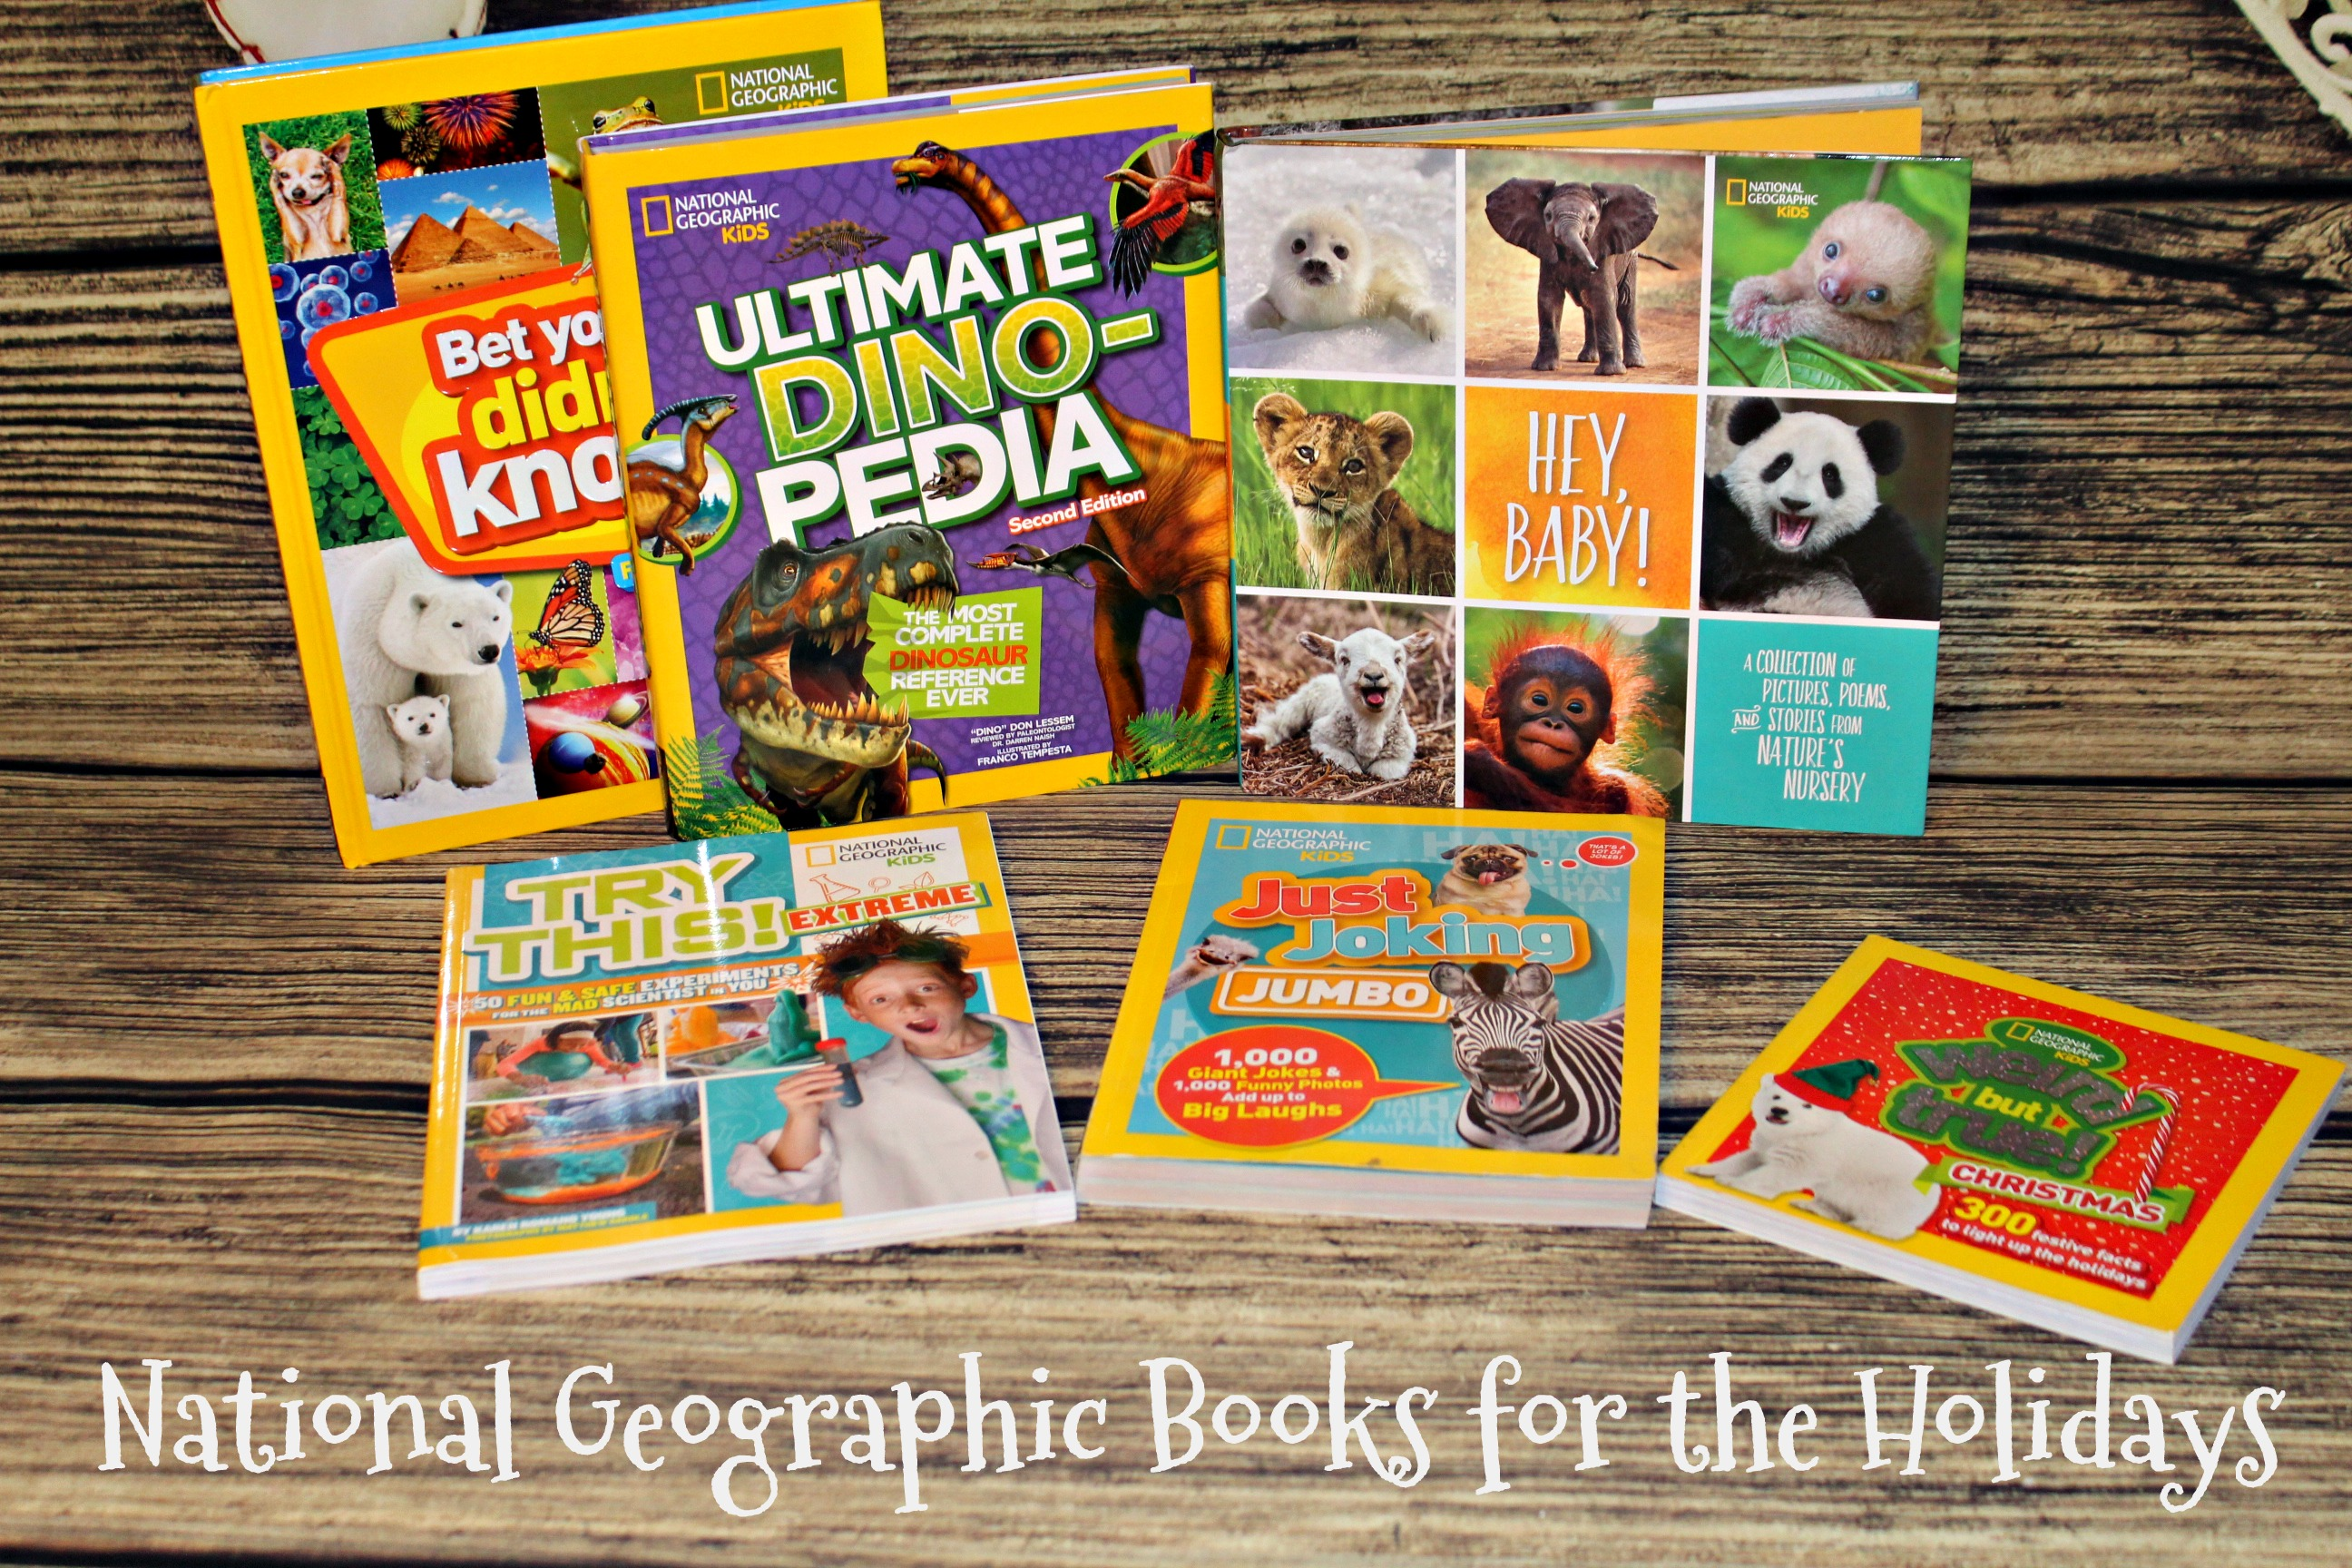 National Geographic Books for the holidays